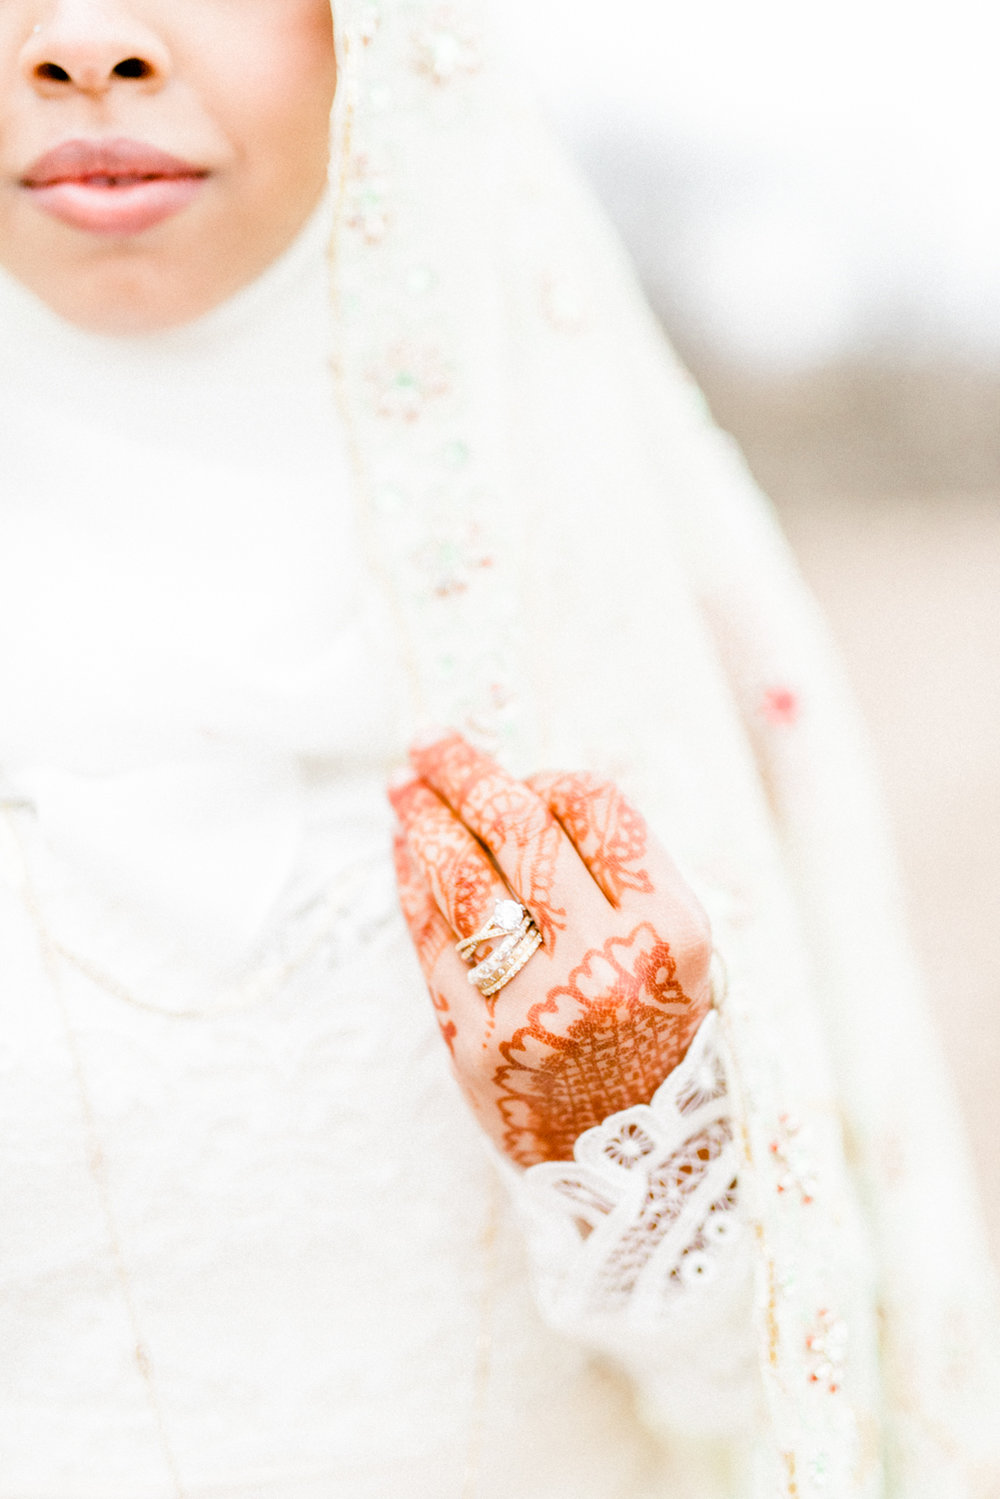 haley-richter-photography-hotel-du-village-wedding-new-hope-pa-muslim-80.jpg